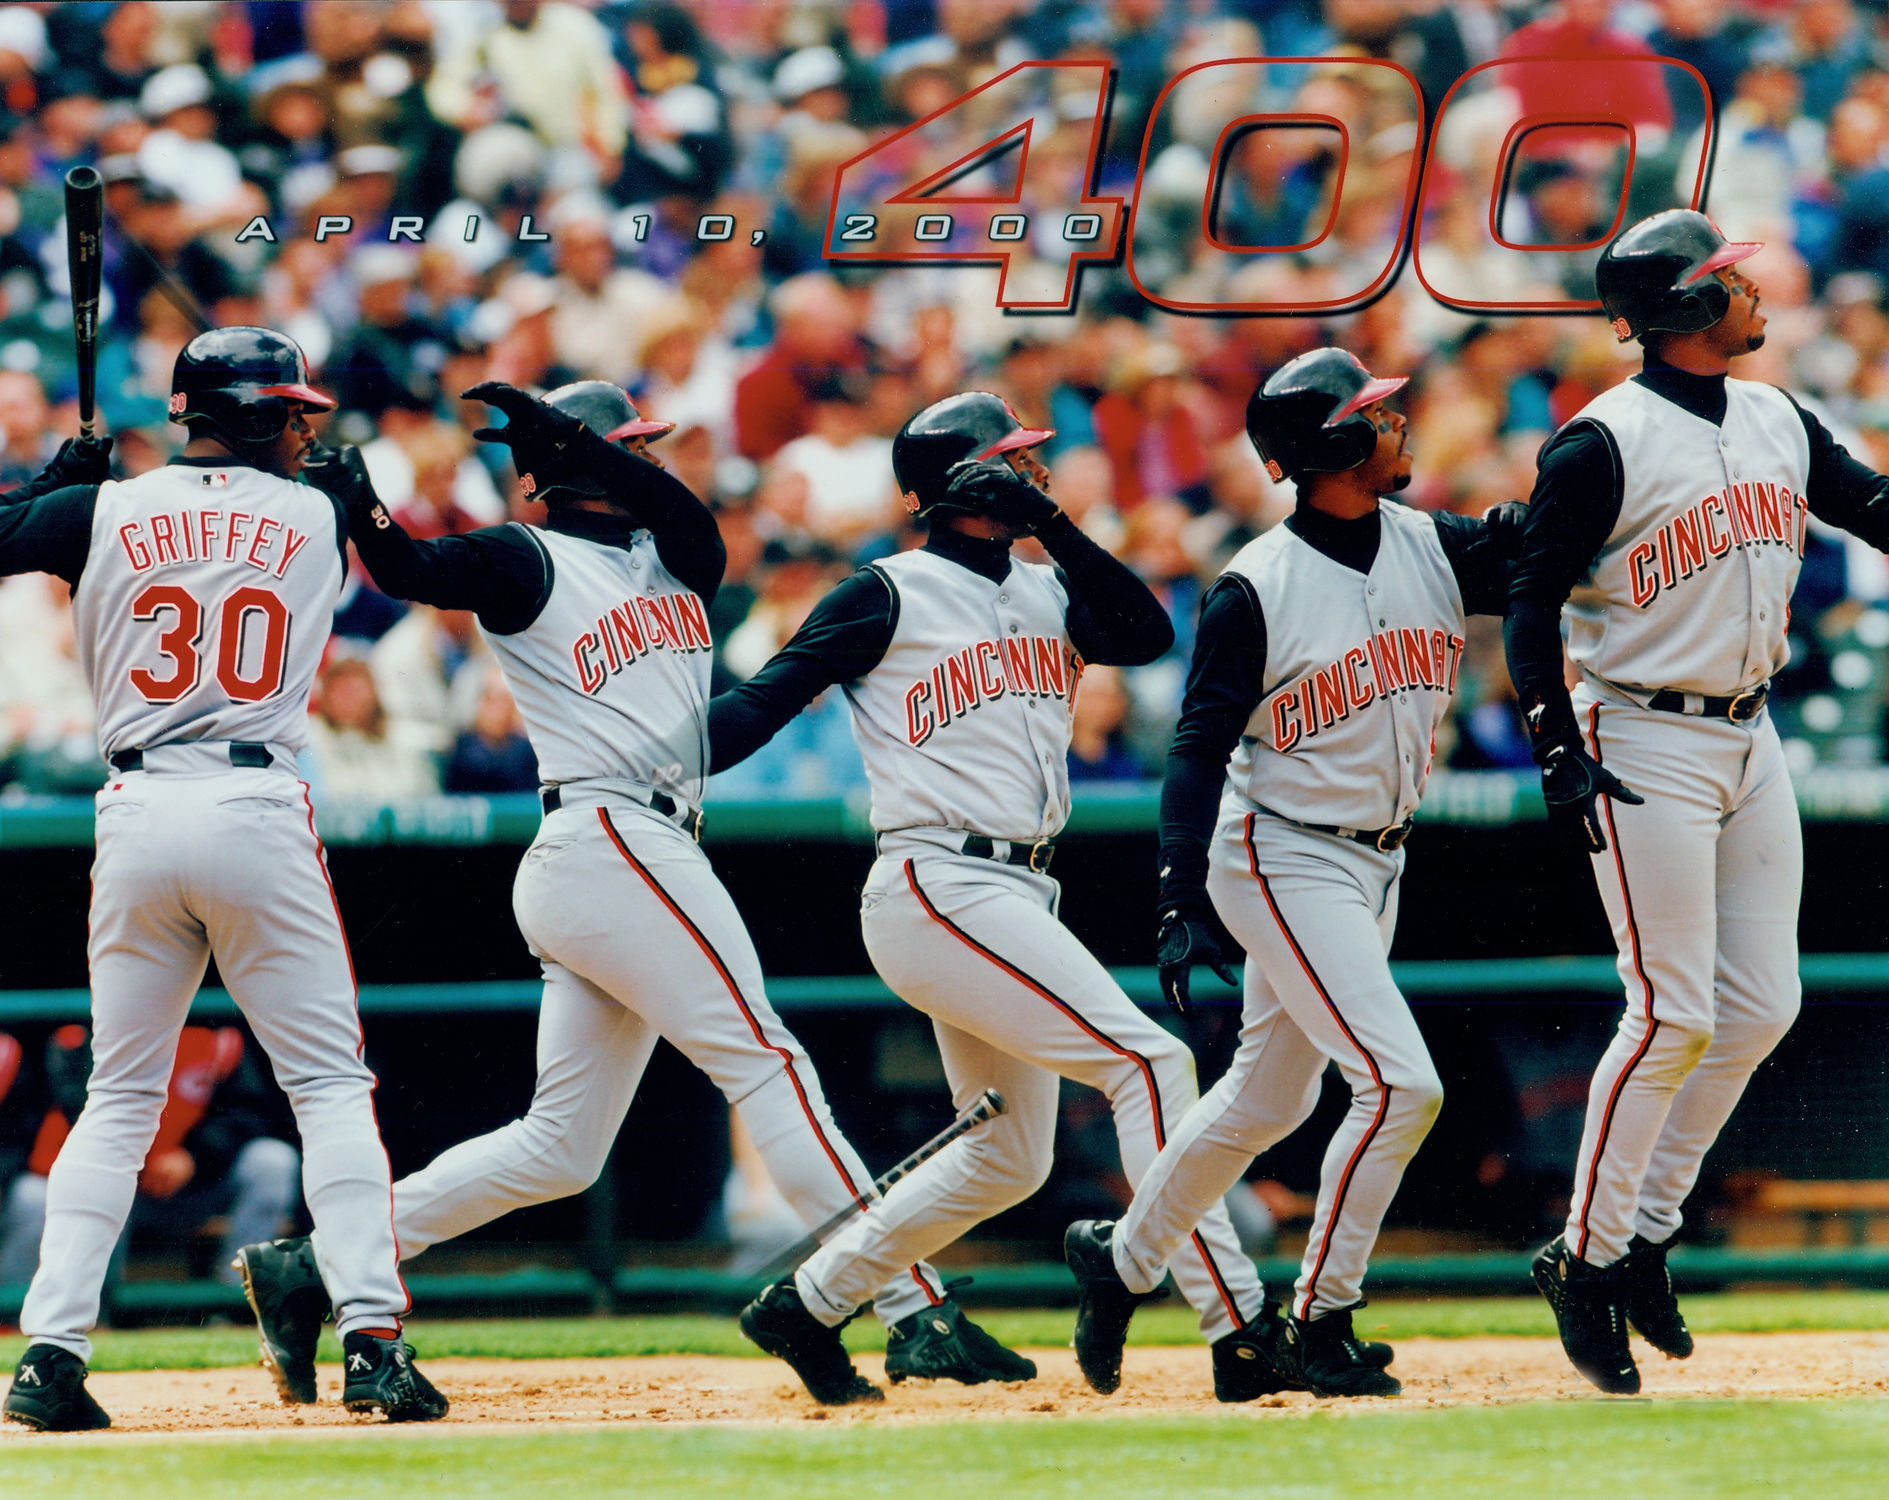 a32ac486ec Hitting sequence of Ken Griffey Jr.'s 400th career home run. This was  accomplished on April 10, 2000. BL-4246.2000 (PhotoFile / National Baseball  Hall of ...